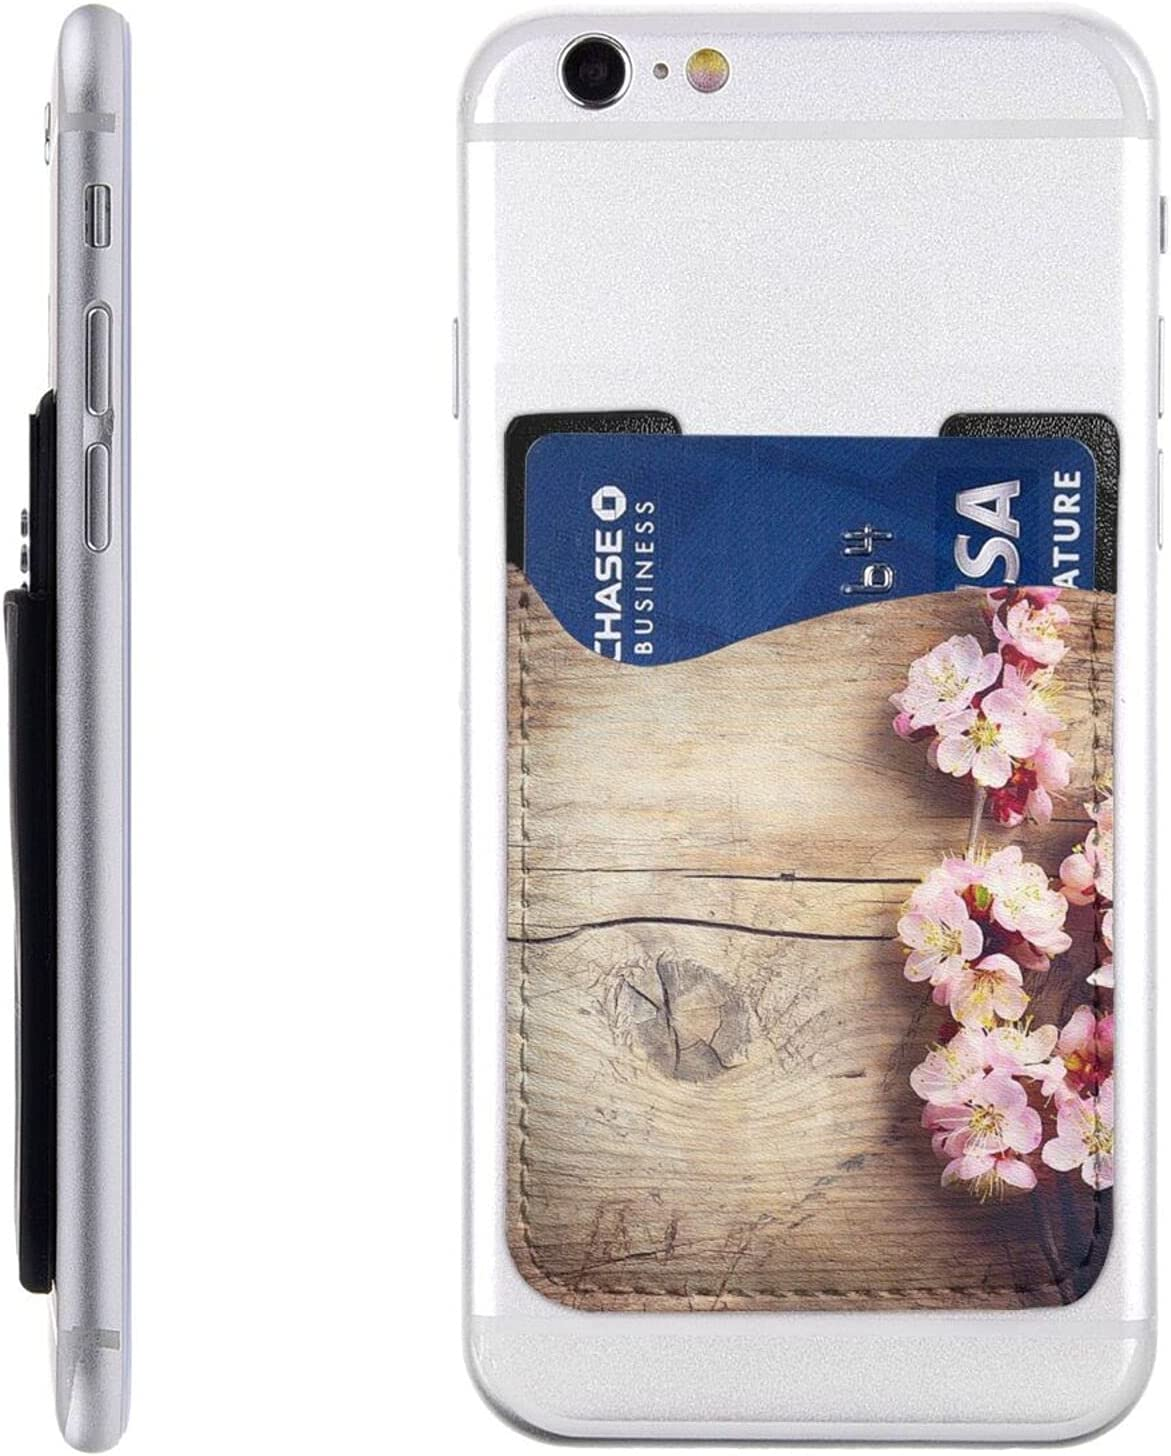 Seasonal Wrap Introduction Spring Blossom Long-awaited On Wooden Table Card Stic Phone Cell Holder